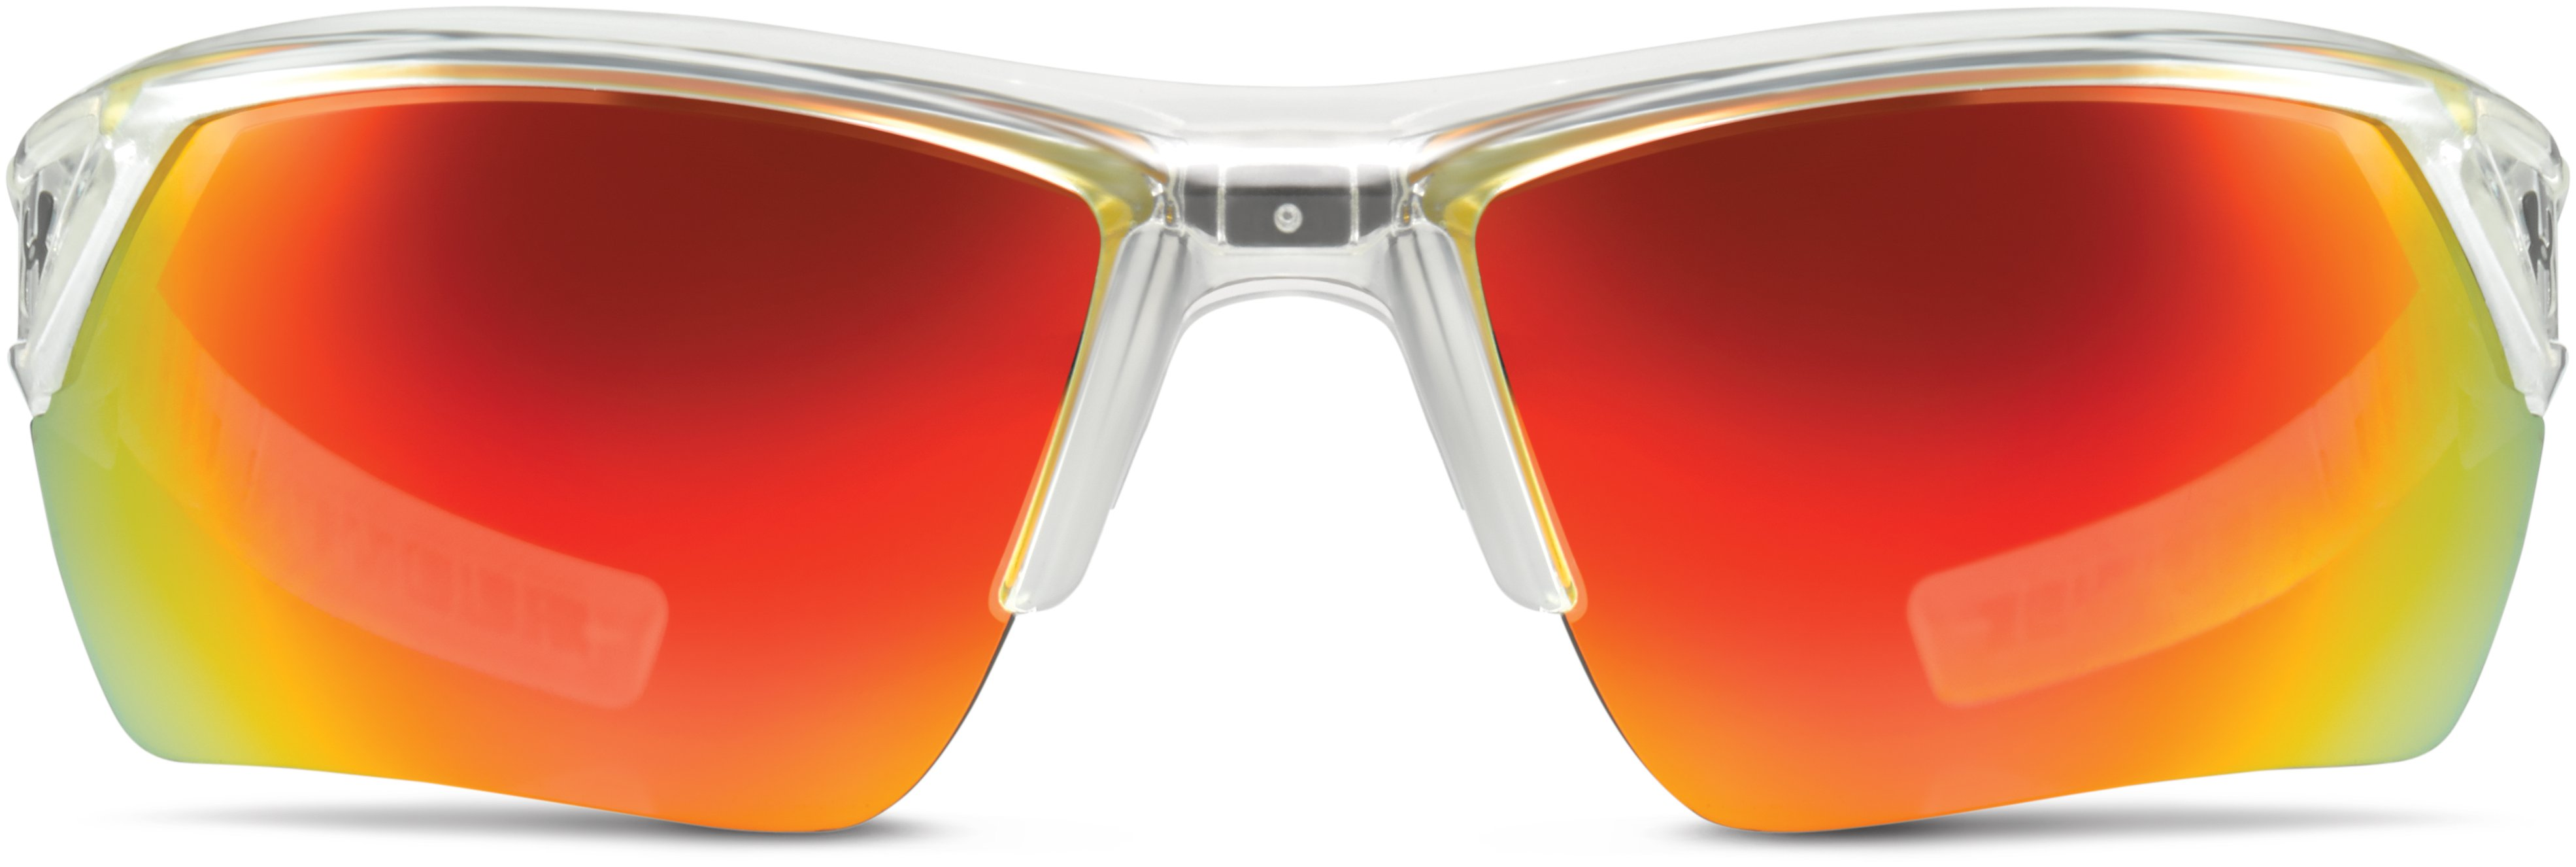 UA Igniter 2.0 Sunglasses, SHINY CRYSTAL CLEAR,